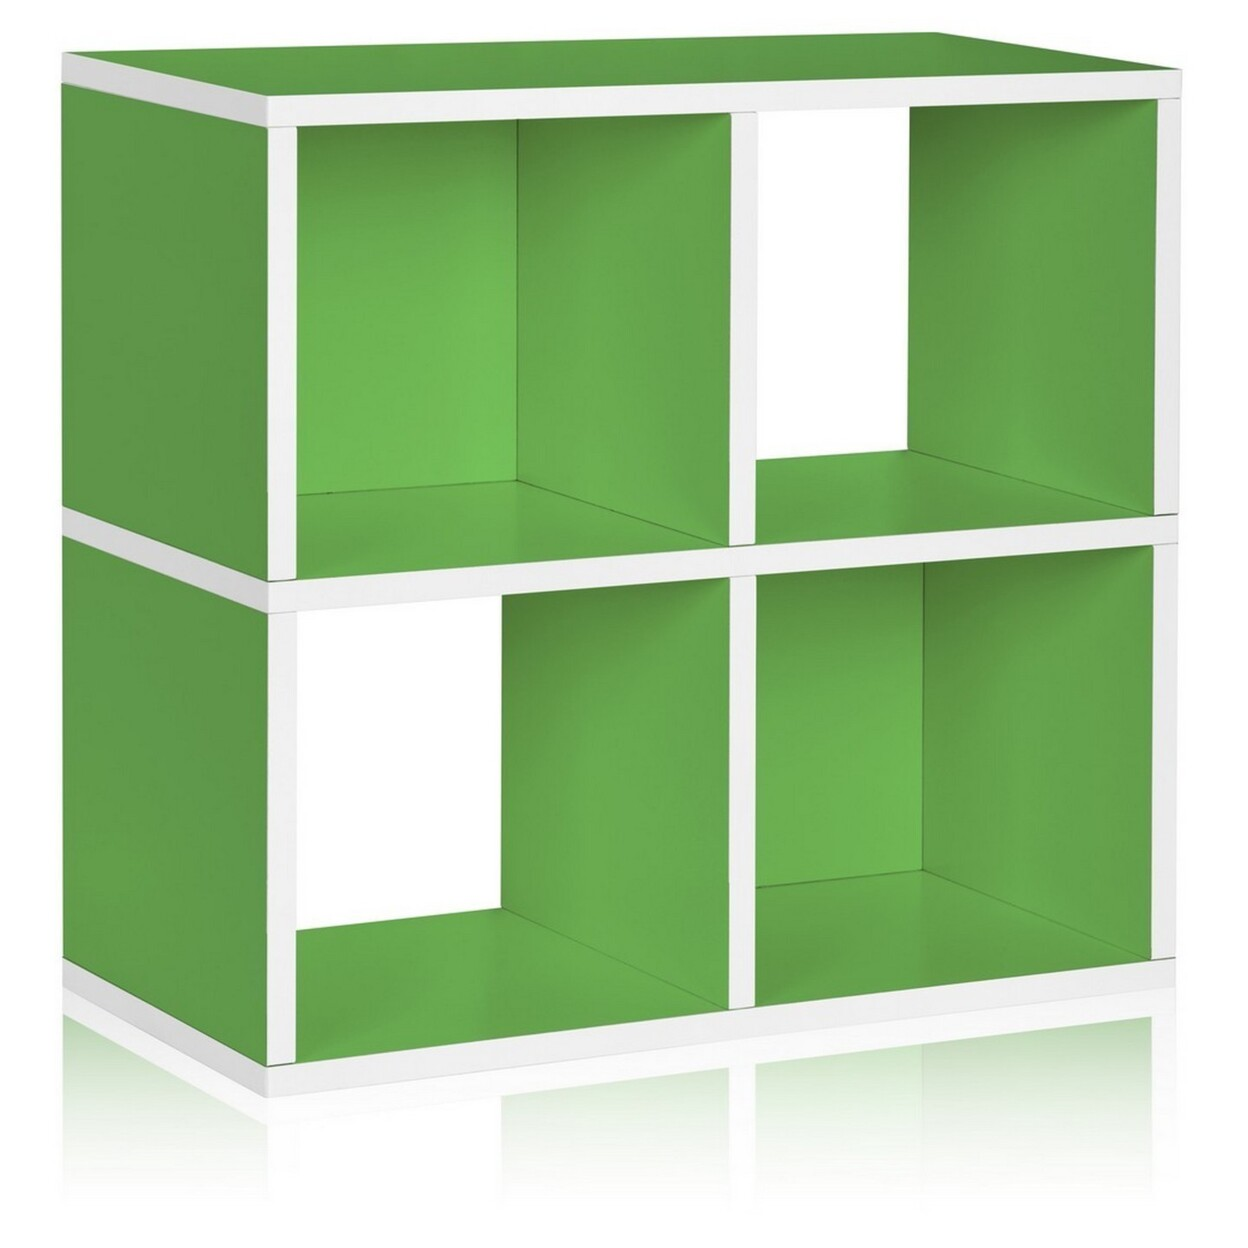 Eco Stackable Quad Cubby Organizer Green Tool-free Assembly Non Toxic Lifetime Warranty